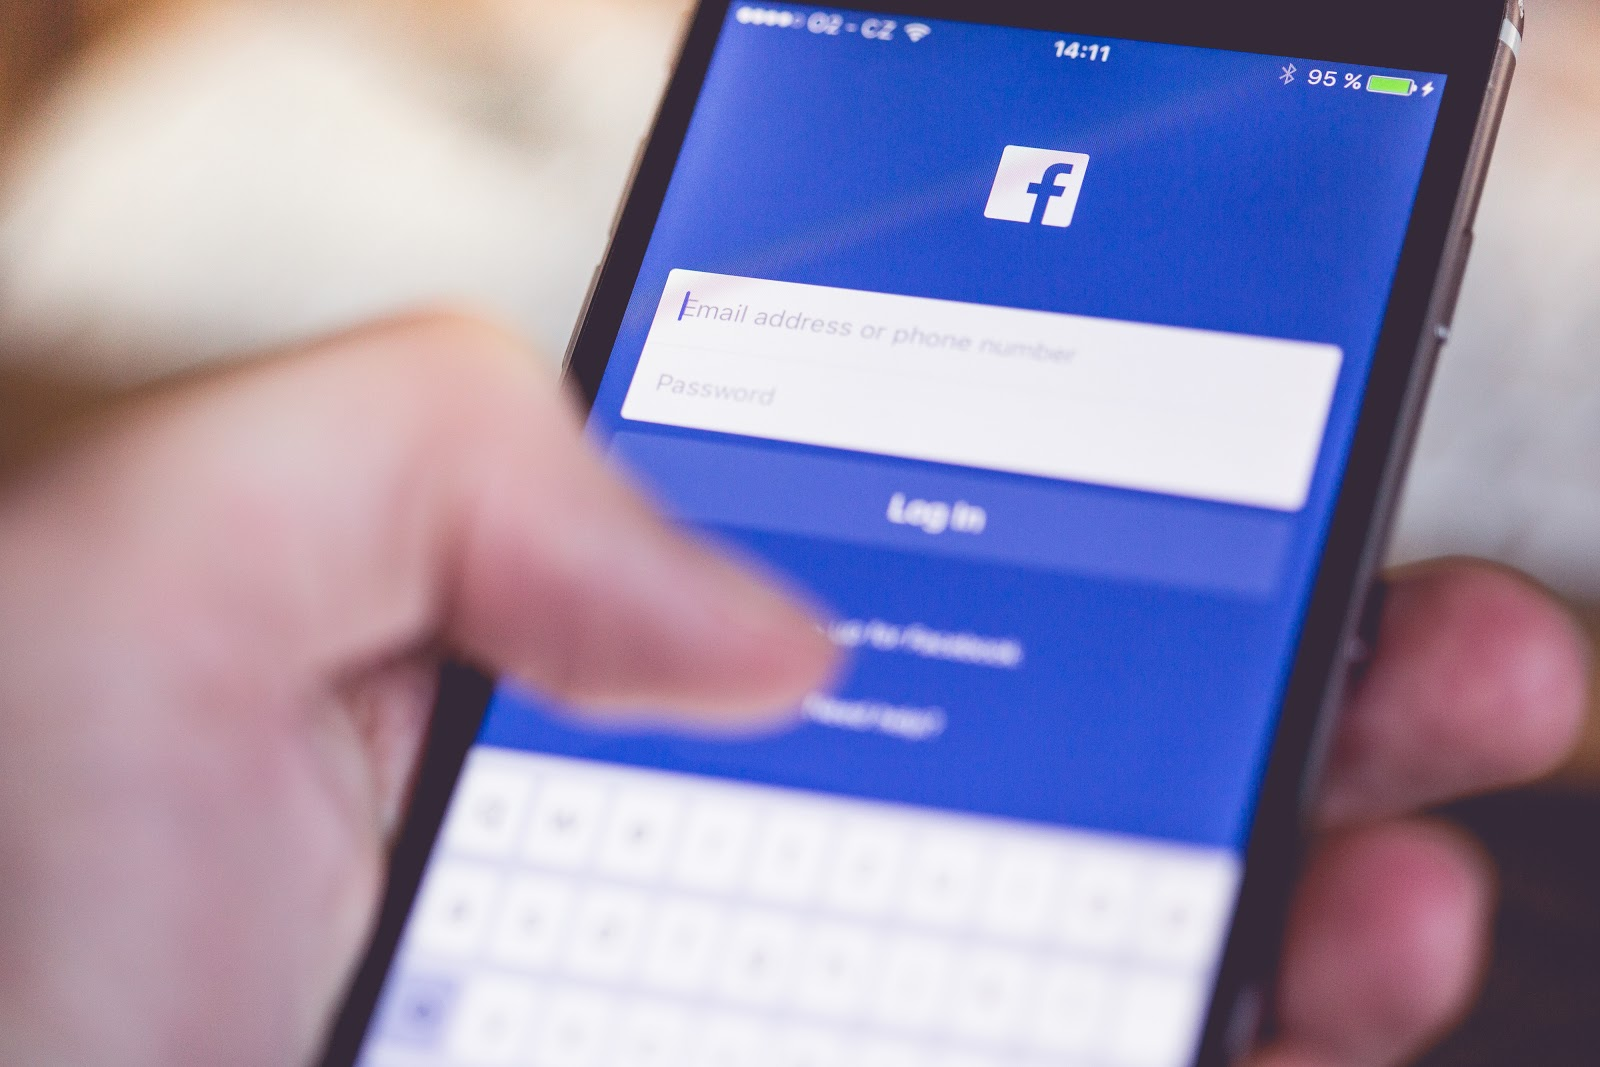 facebook-app-login-splash-screen-on-iphone-picjumbo-com.jpg